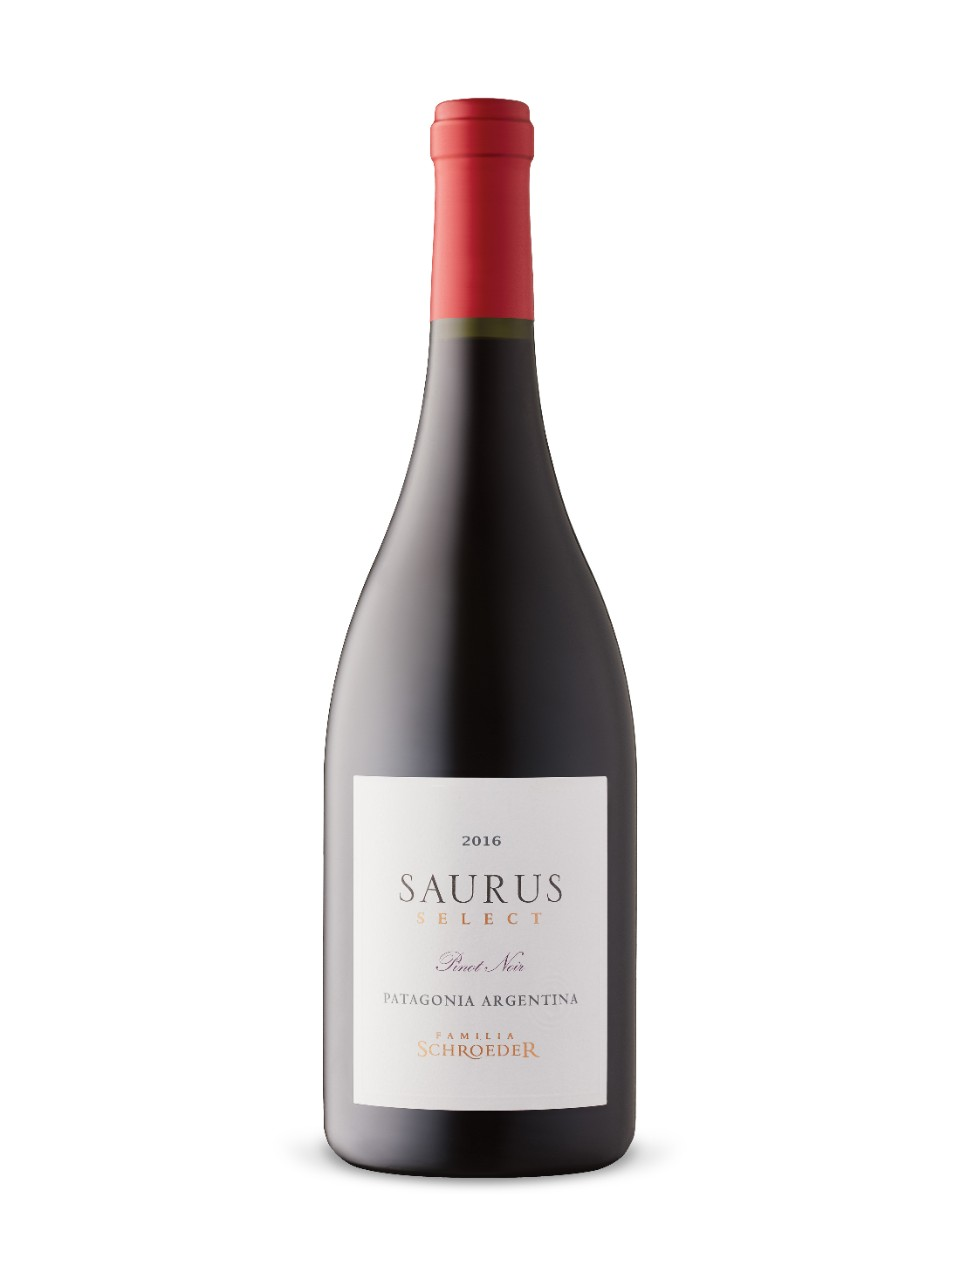 Image for Familia Schroeder Saurus Select Pinot Noir 2016 from LCBO